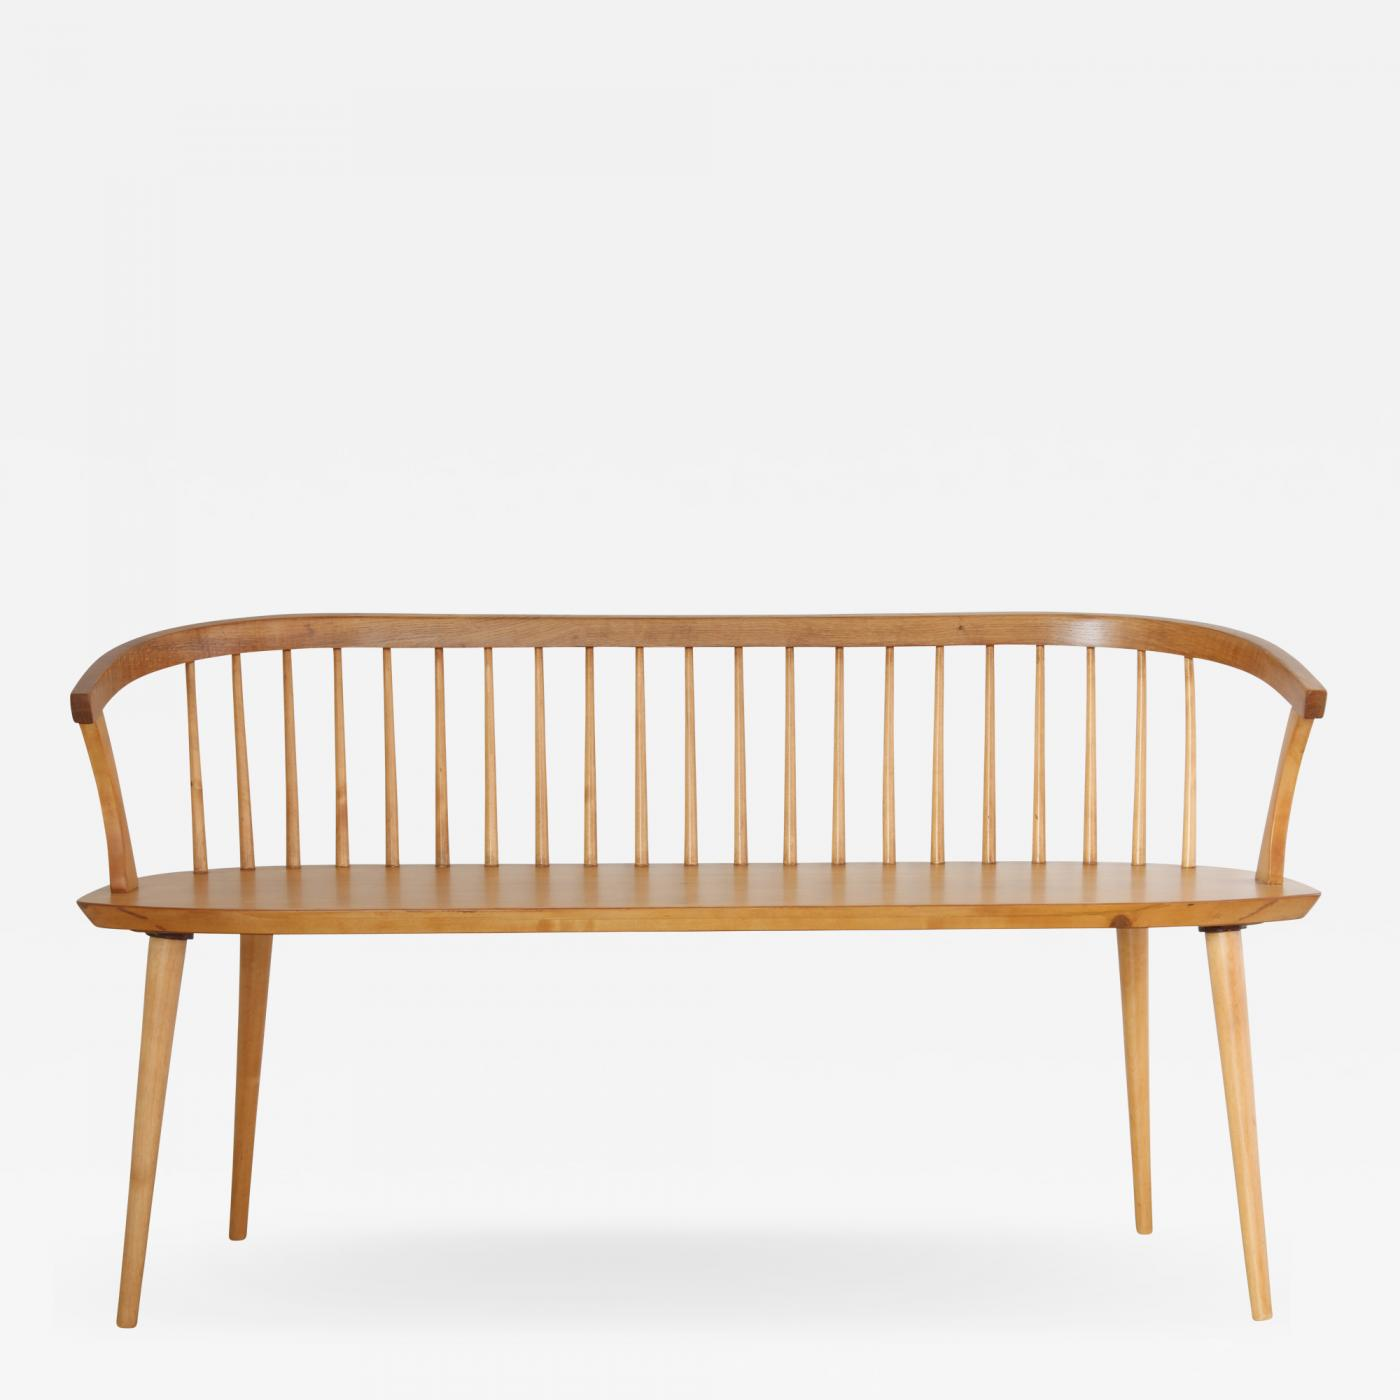 Awesome Spindle Back Wooden Bench Gmtry Best Dining Table And Chair Ideas Images Gmtryco